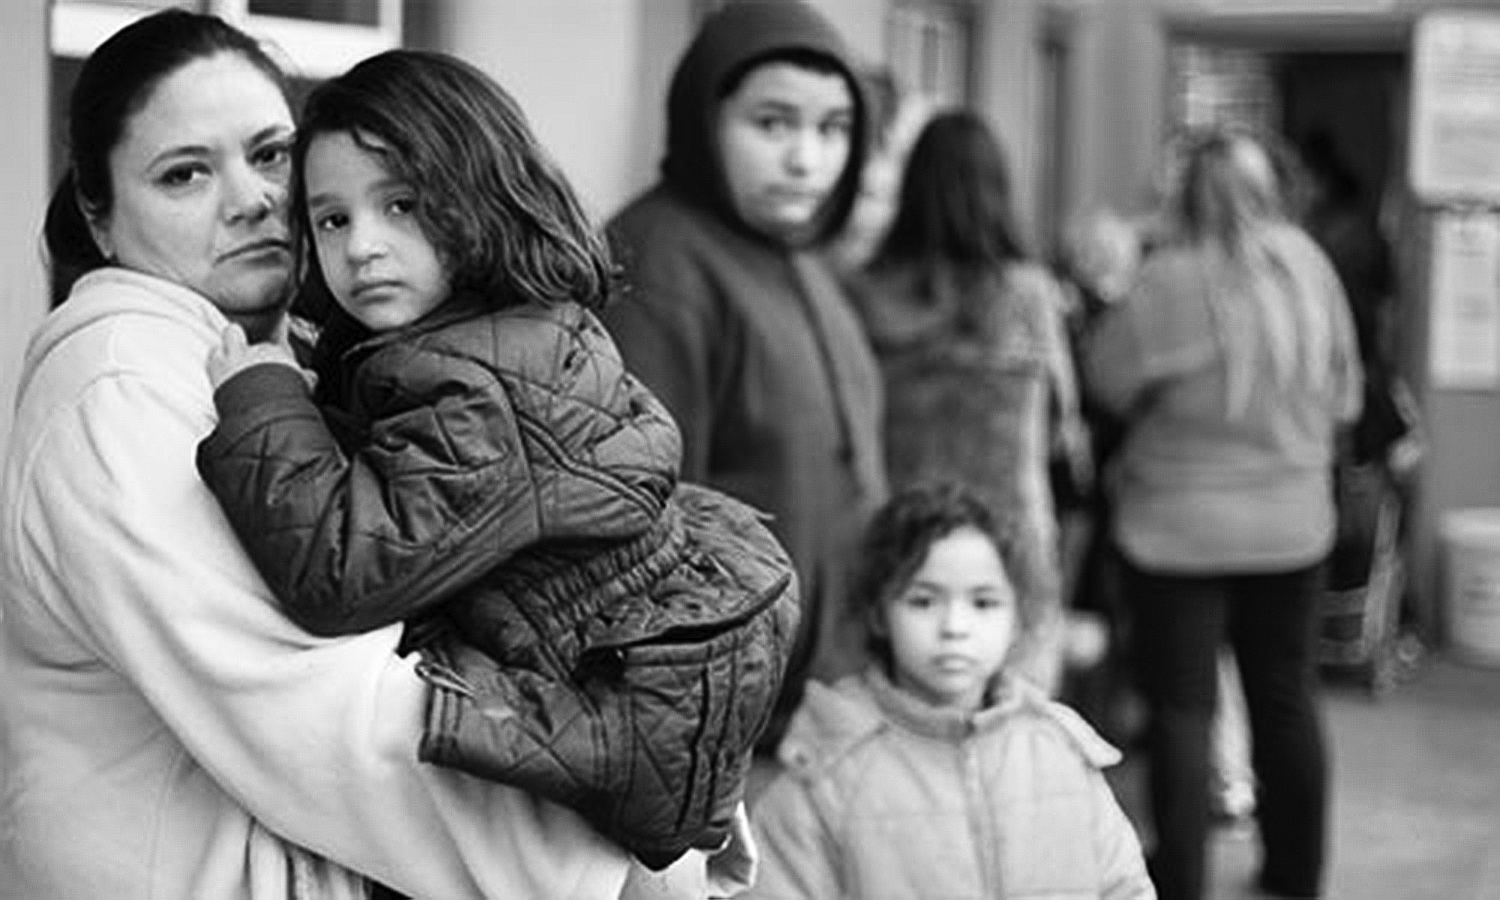 homelessness and children Resources include information on policies, procedures, and strategies to increase access to services for children experiencing homelessness, a resource list, an issue brief on early care and education for young children experiencing homelessness, a developmental screening guide for housing service providers, webinars, and blog posts.